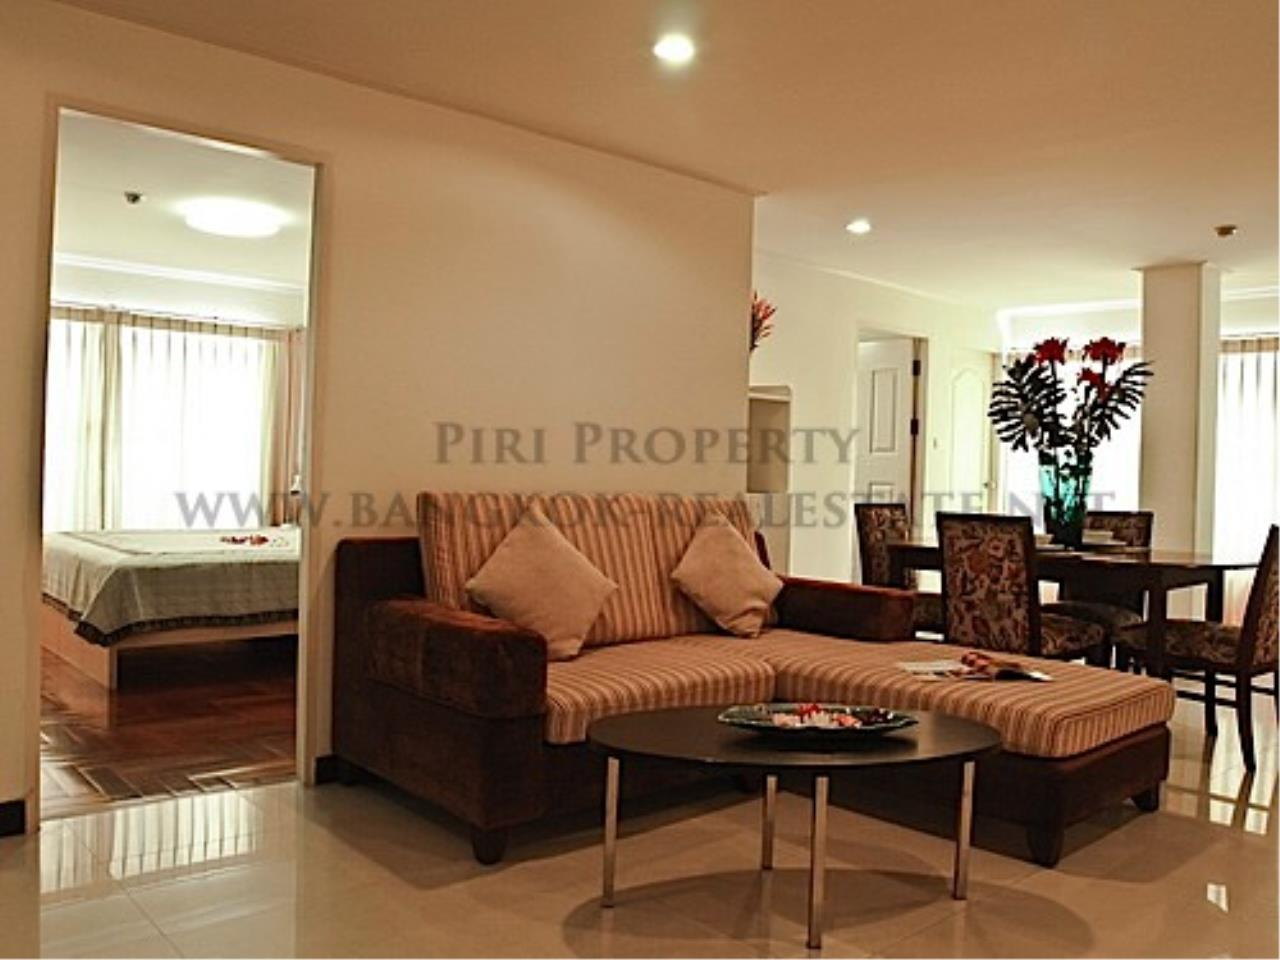 Piri Property Agency's Nicely Decorated Unit in Prime Area 1